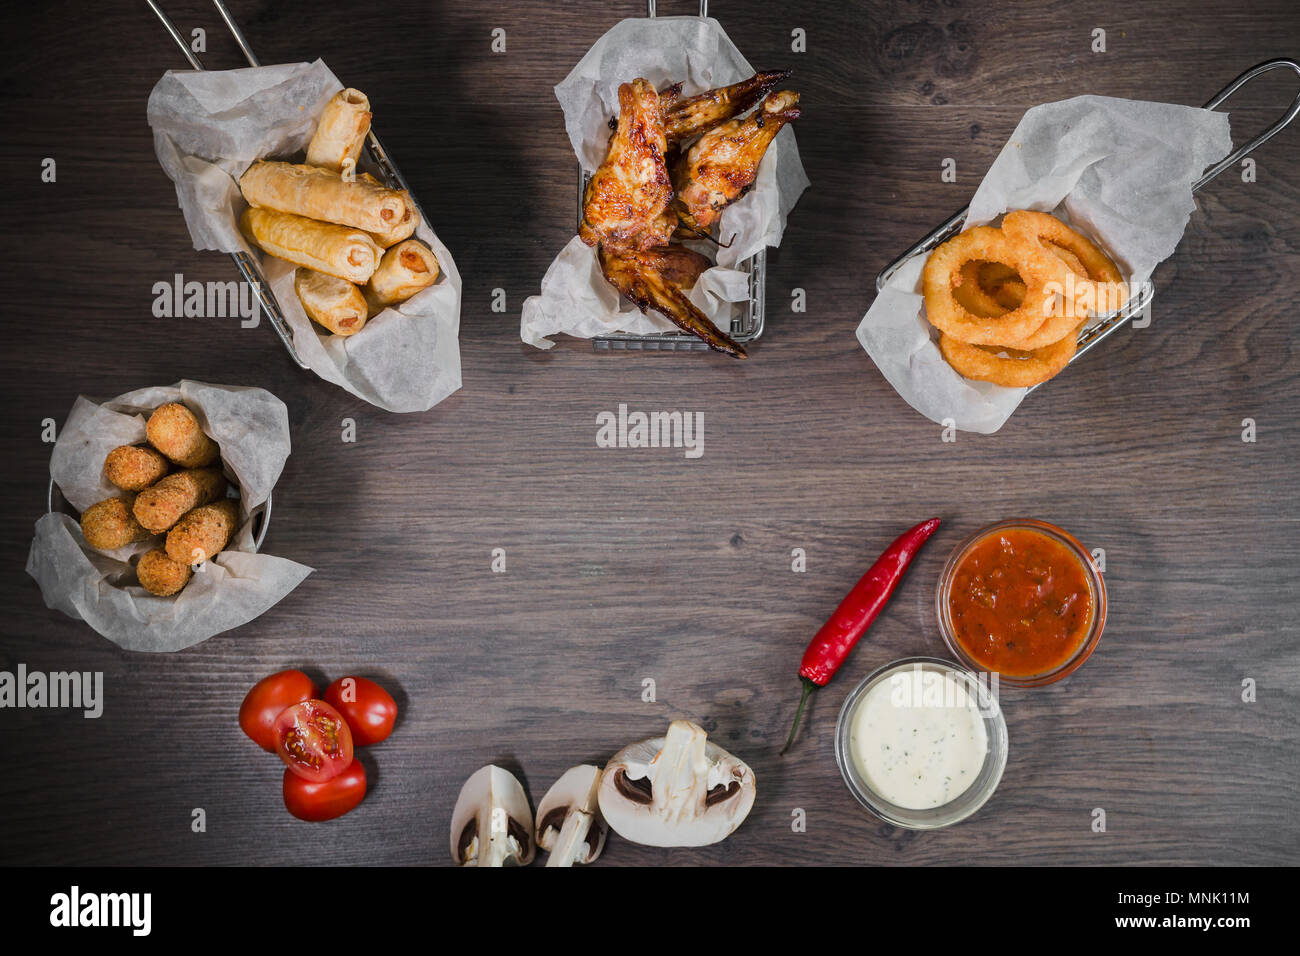 Snack for beer in the form of nuggets cheese rings and fried chicken legs Stock Photo